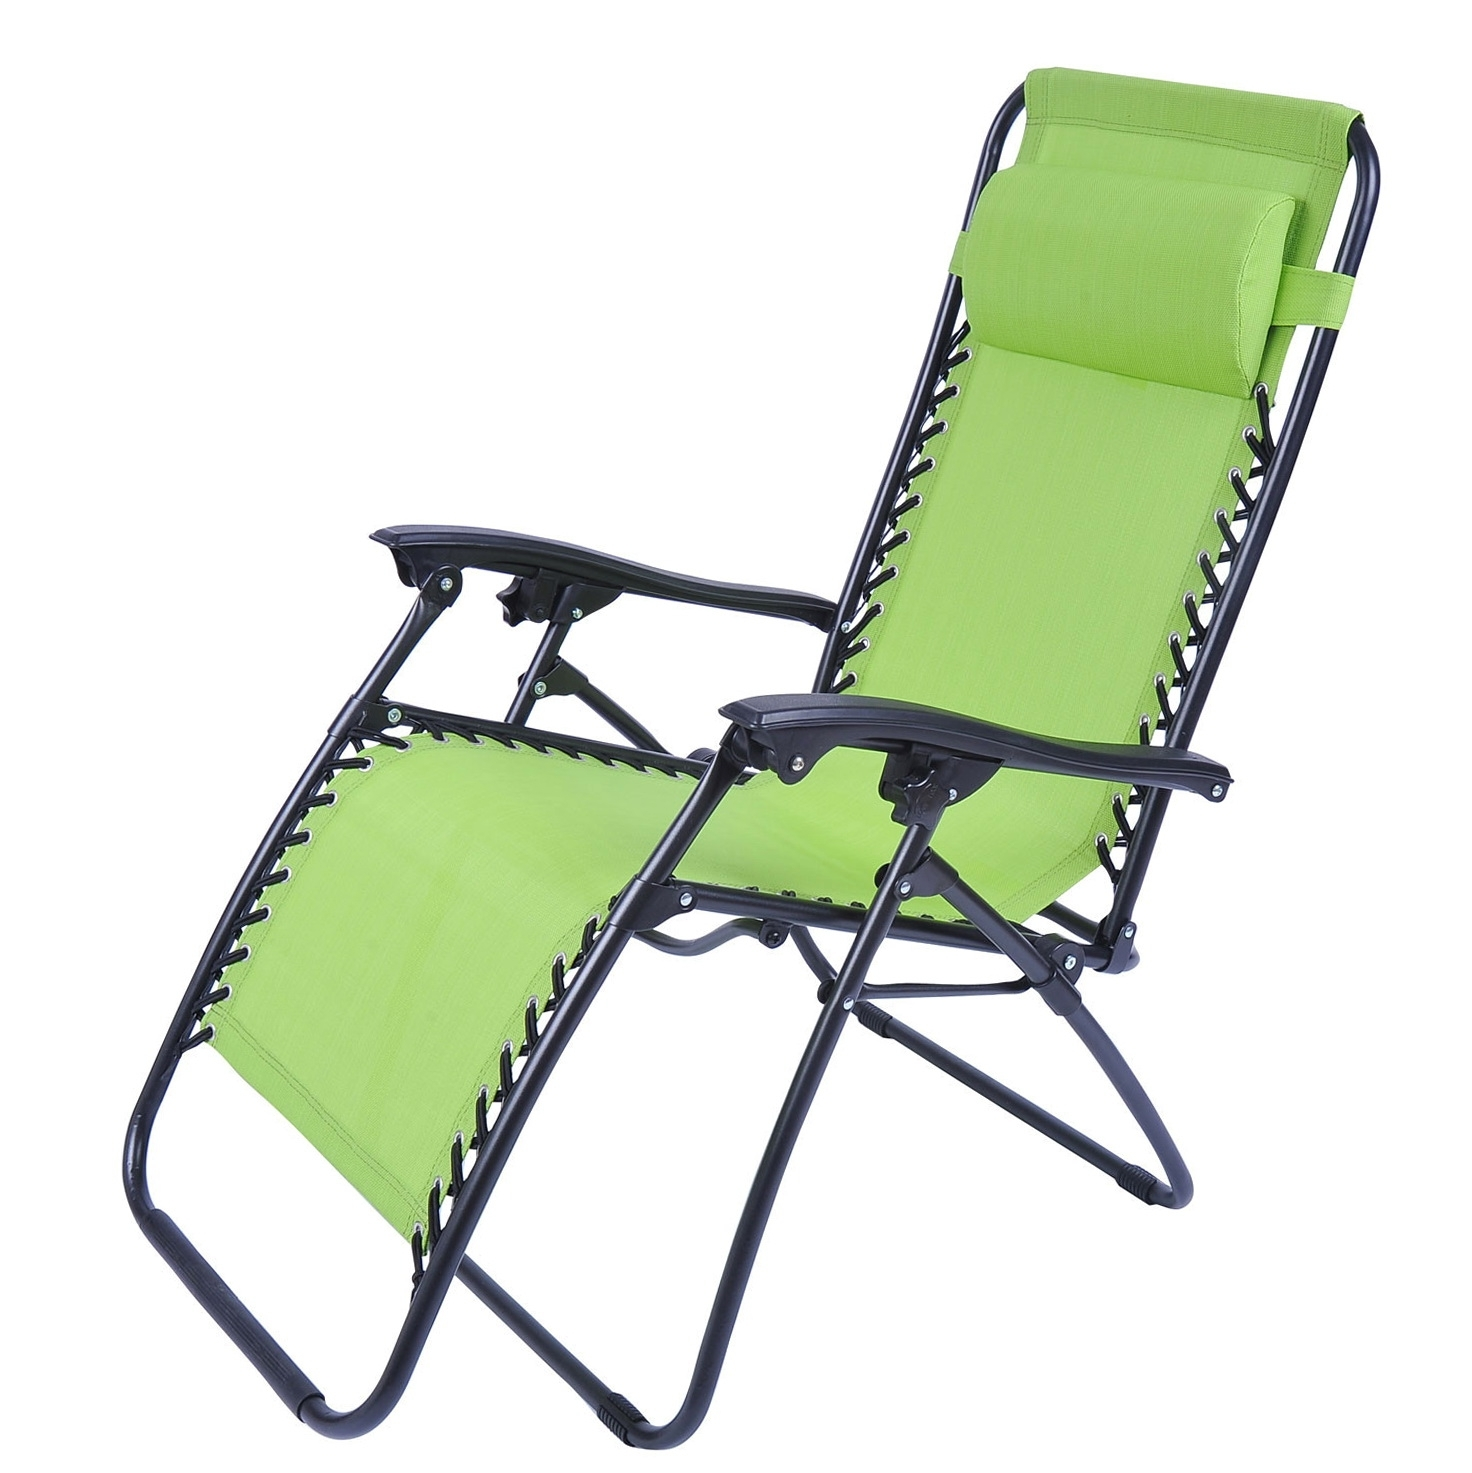 Folding Chaise Lounge Chair Patio Outdoor Pool Beach Lawn Recliner With Recent Folding Chaise Lounge Chairs For Outdoor (View 2 of 15)